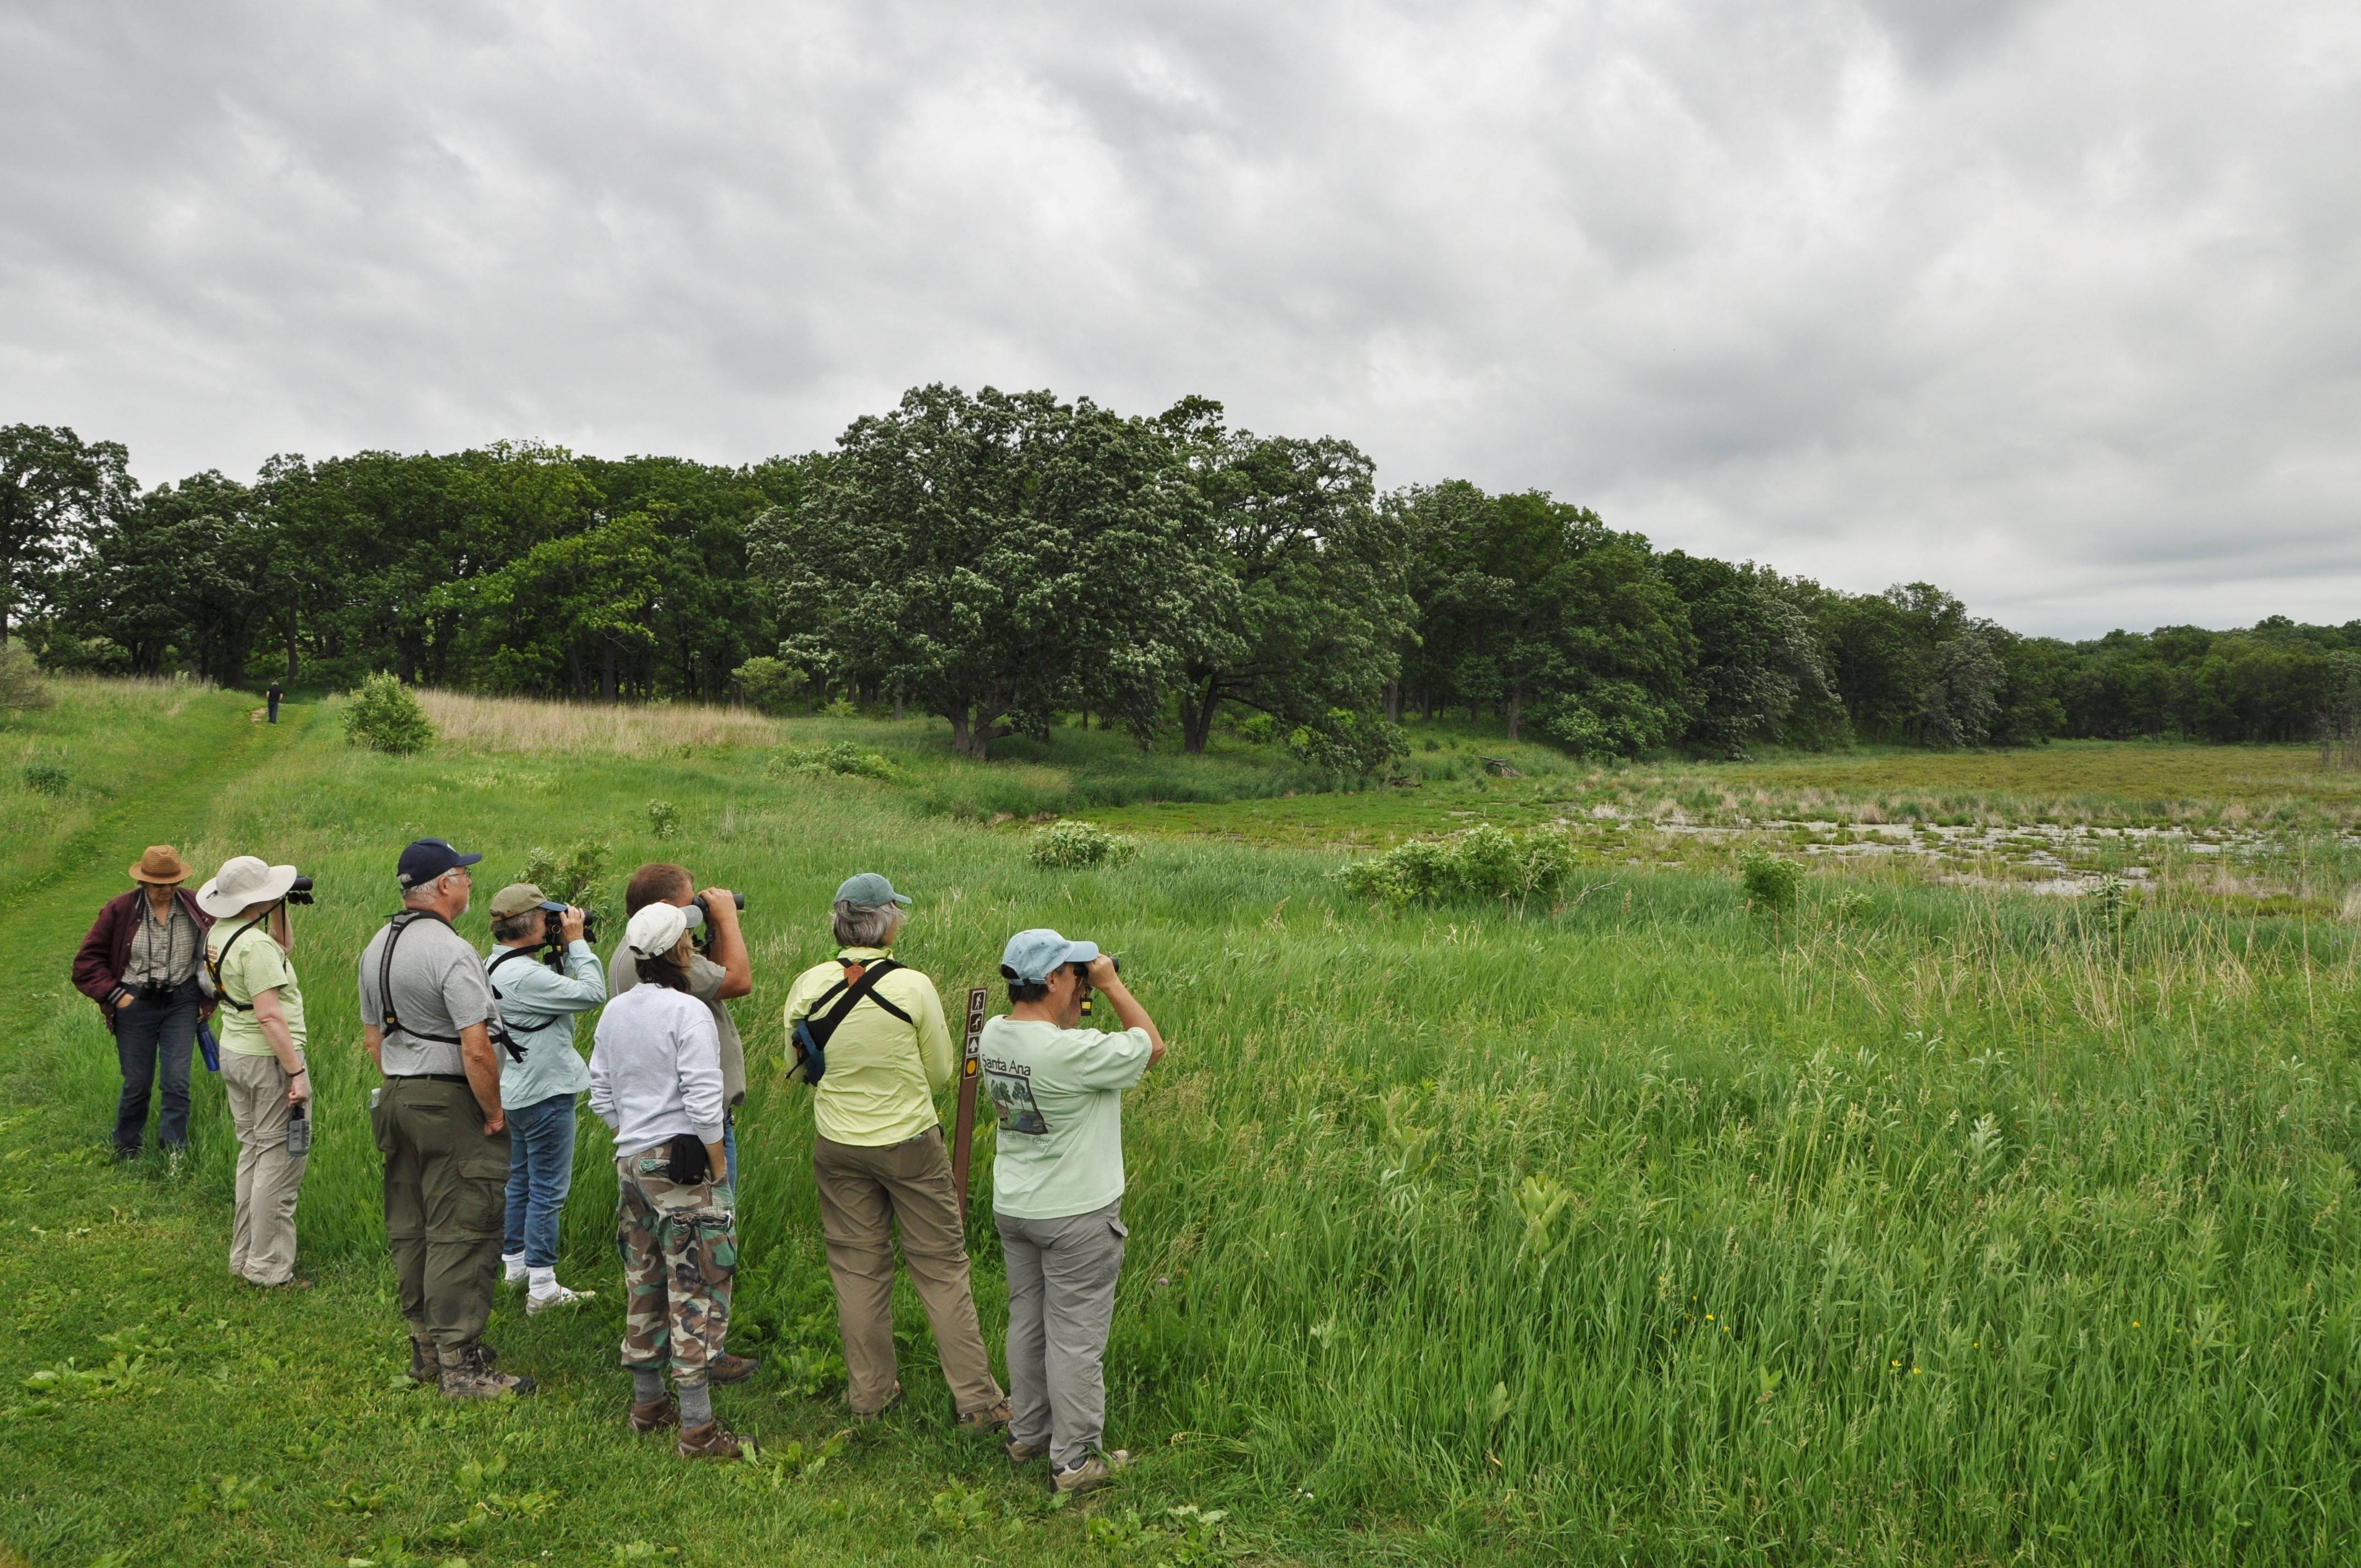 A birding group pauses to observe a bog at Glacial Park in McHenry County, where several great egrets were foraging and a bittern was seen briefly. The 3,200-acre Glacial Park is one of the key pieces of open land that comprise Hackmatack National Wildlife Refuge, itself a collection of federal, state, county and private parcels.